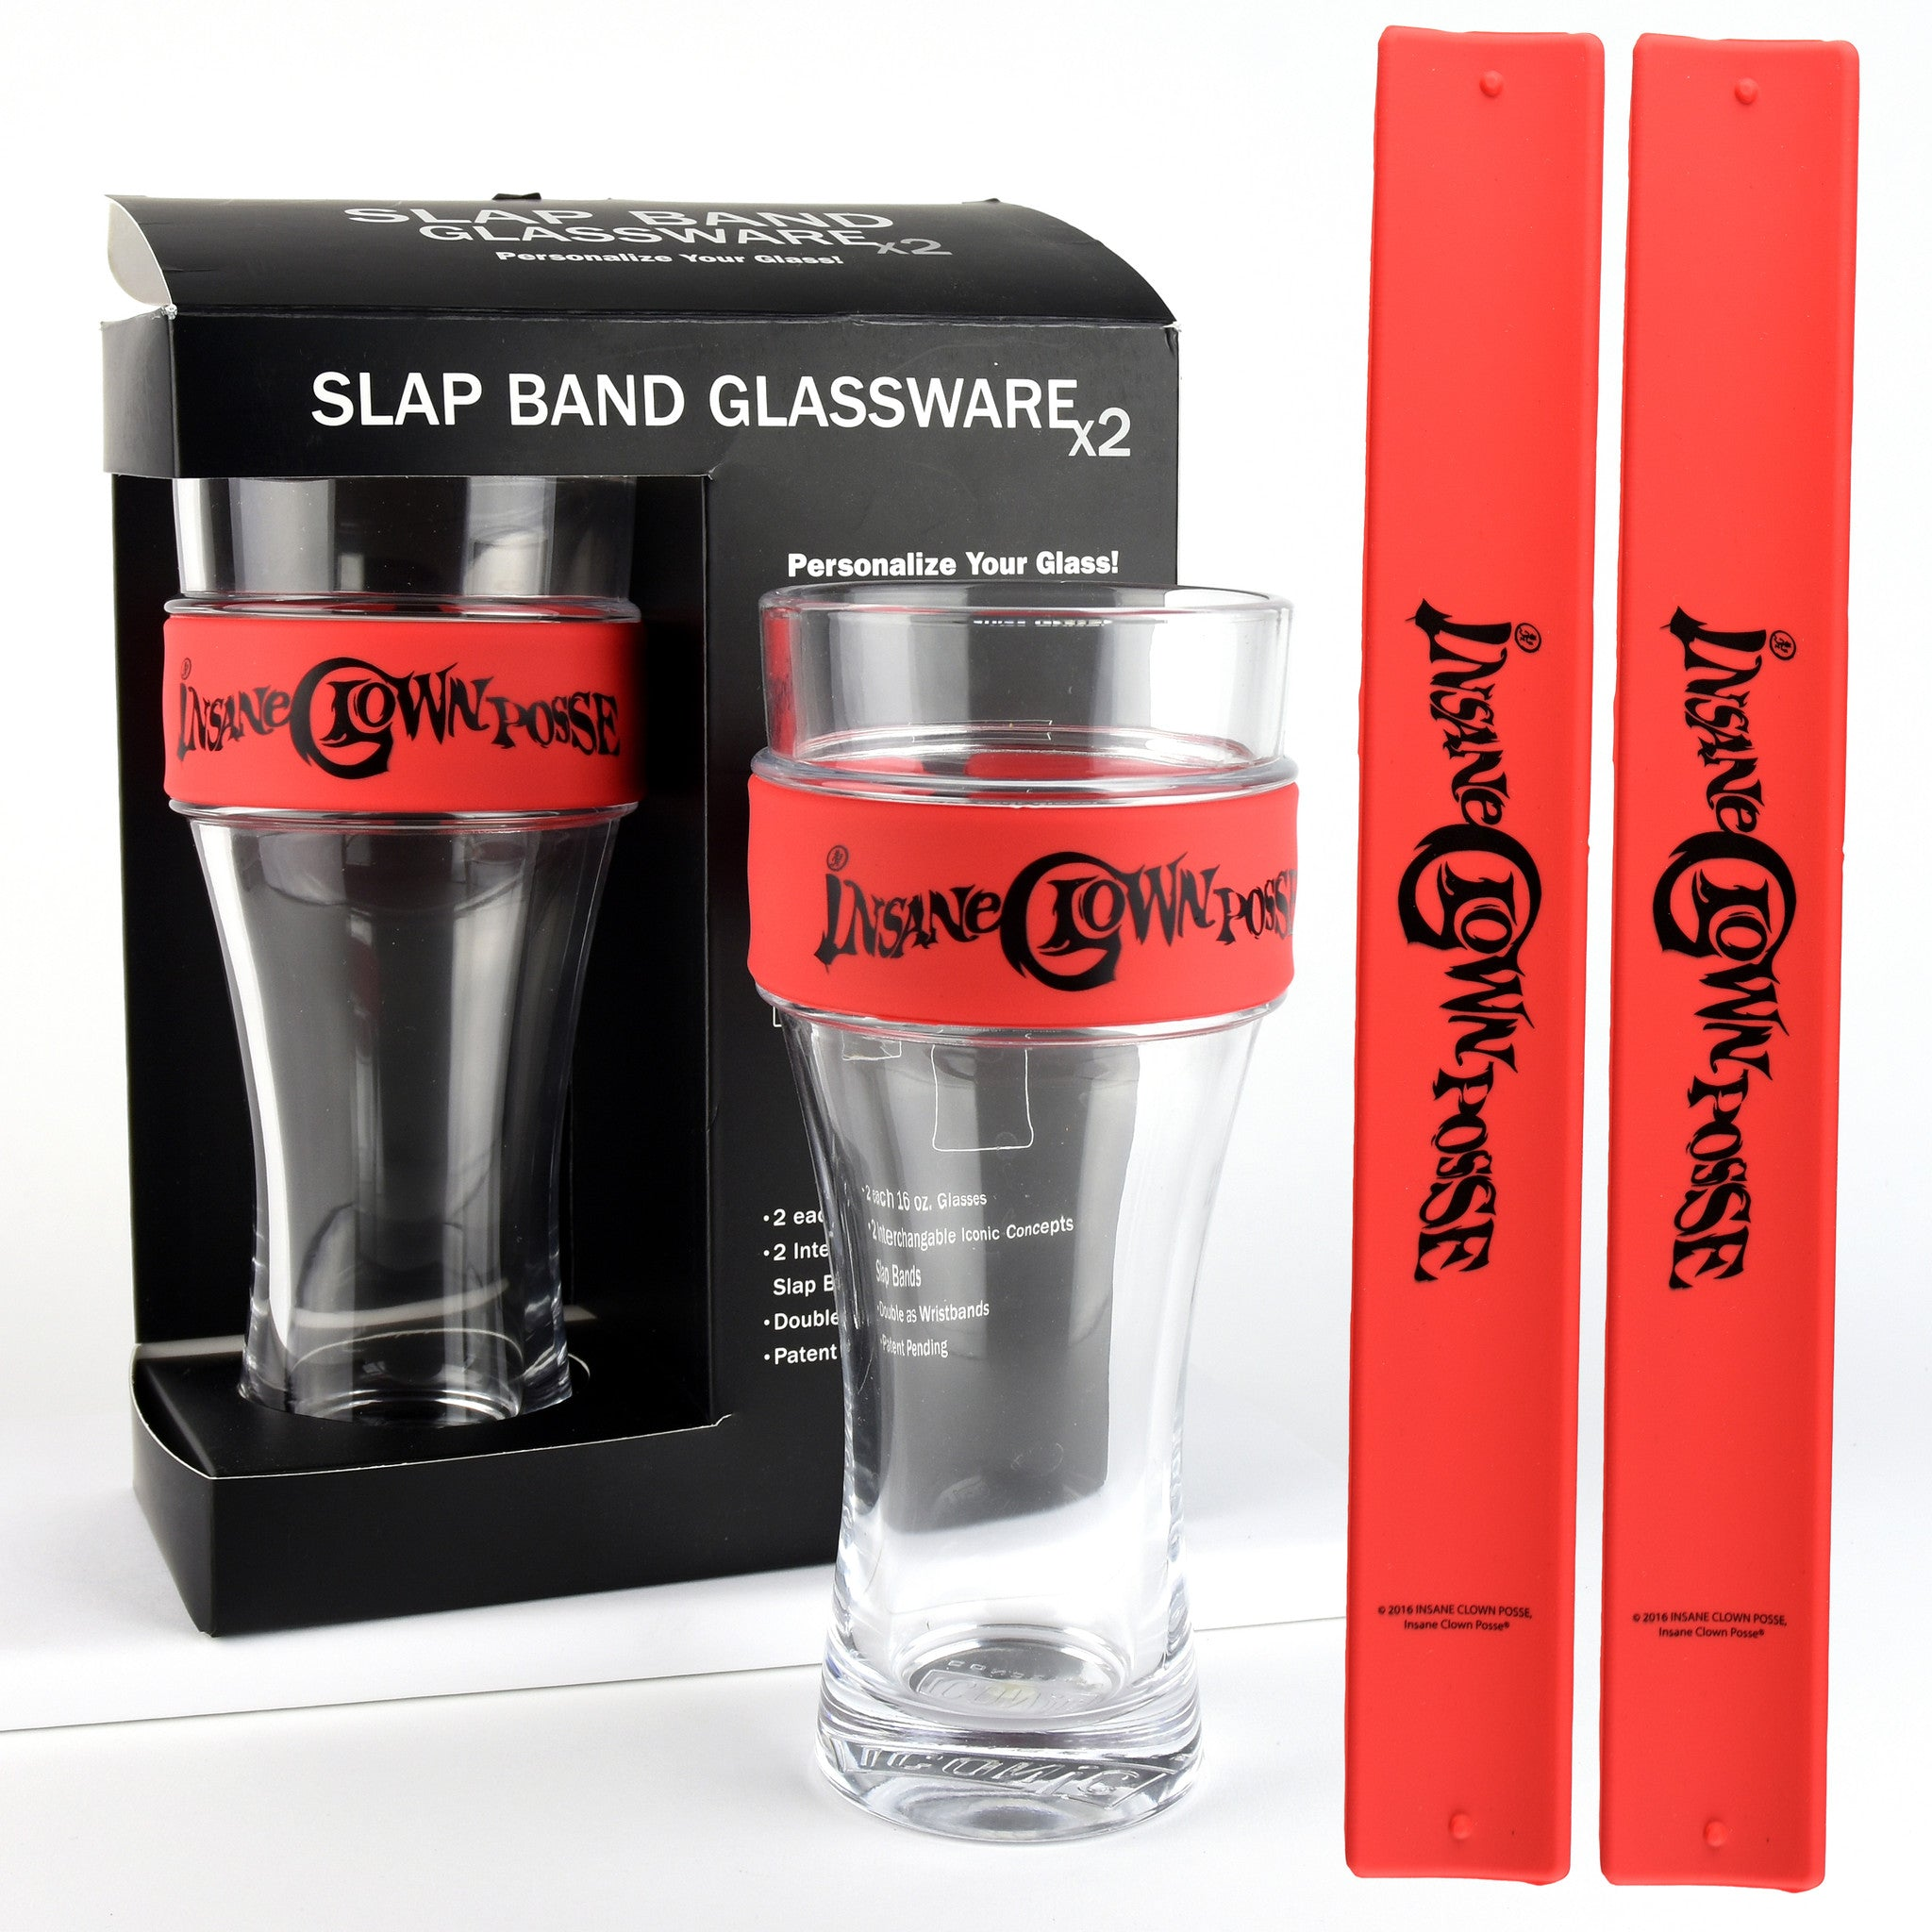 Insane Clown Posse Slap Band Glassware - 2 Pack with Slap Band Insane Clown Posse Logo - Red Band w/Black Logo